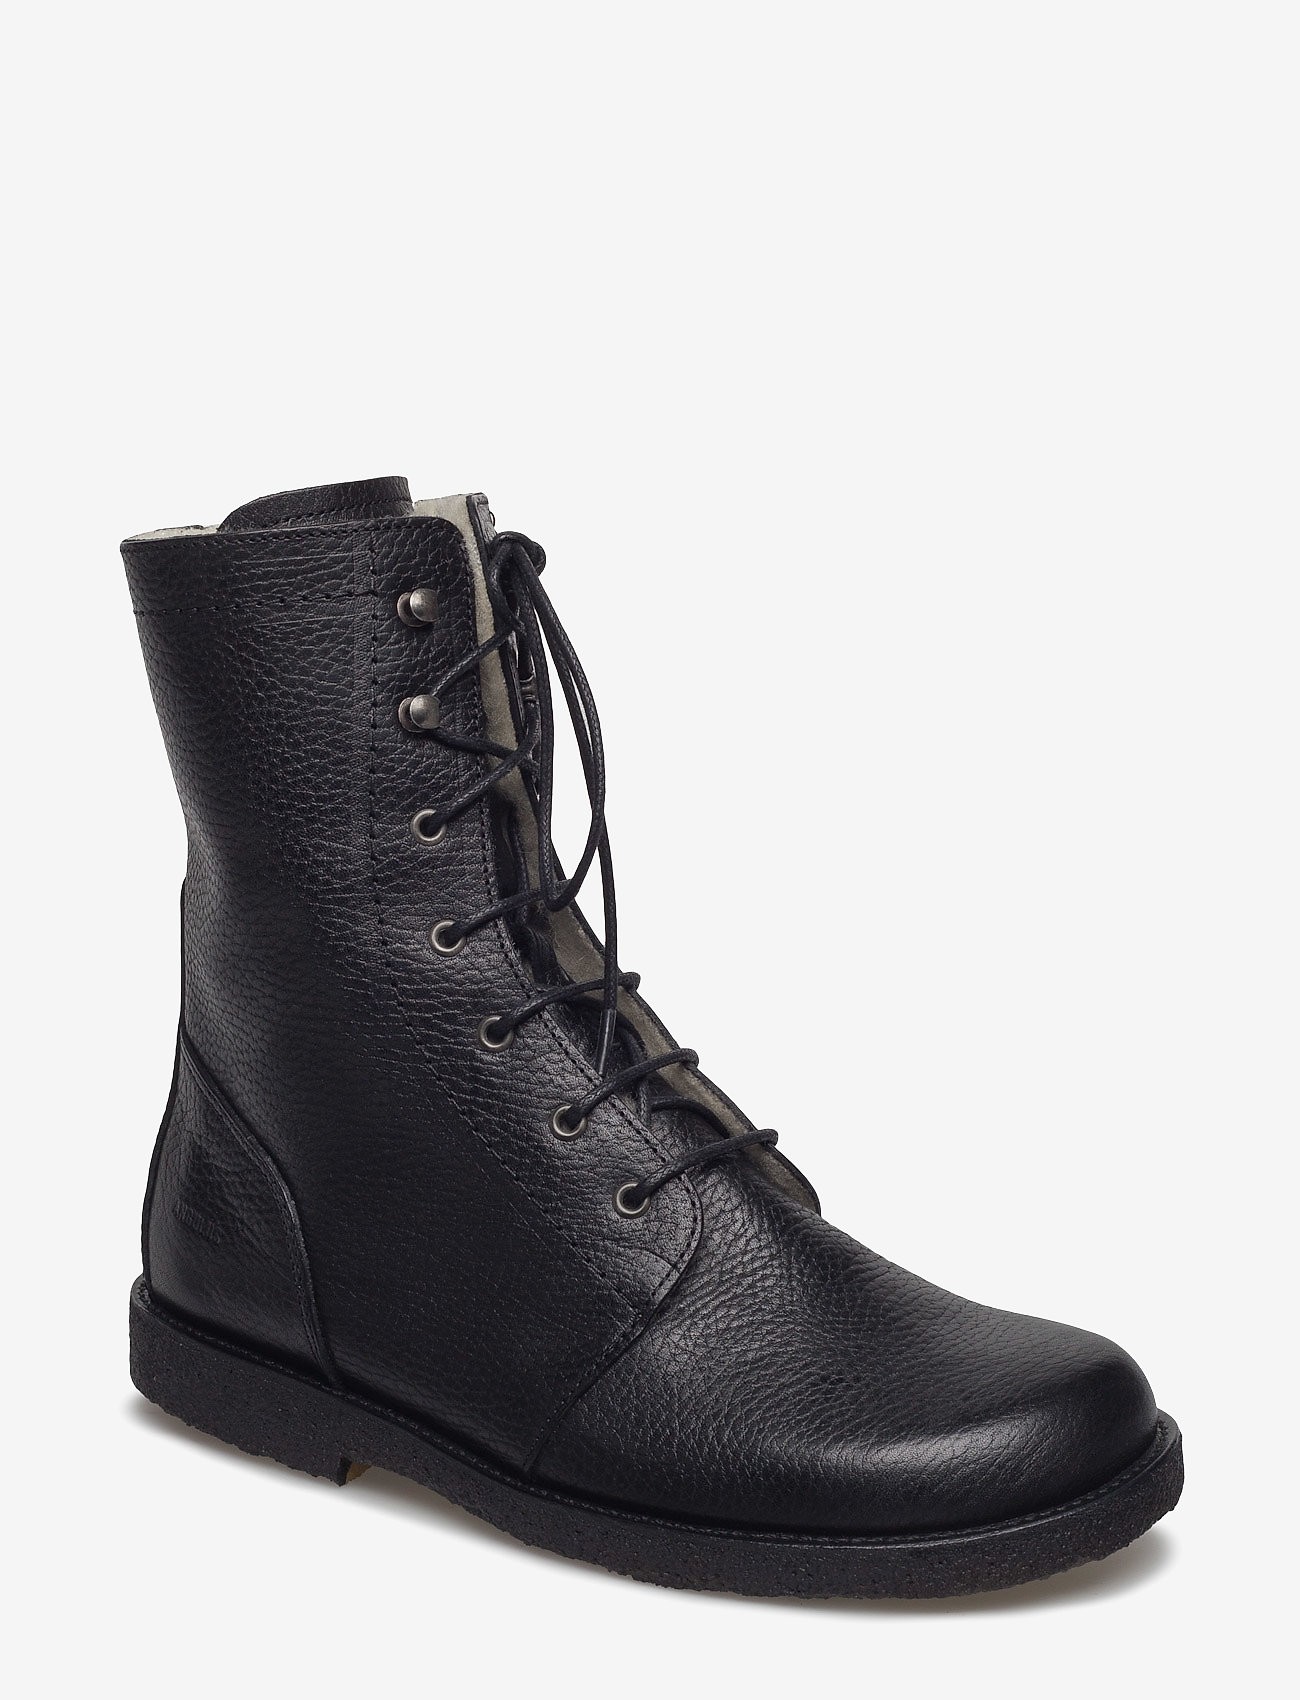 ANGULUS - Boots - flat - with laces - talon bas - 2504 black - 0